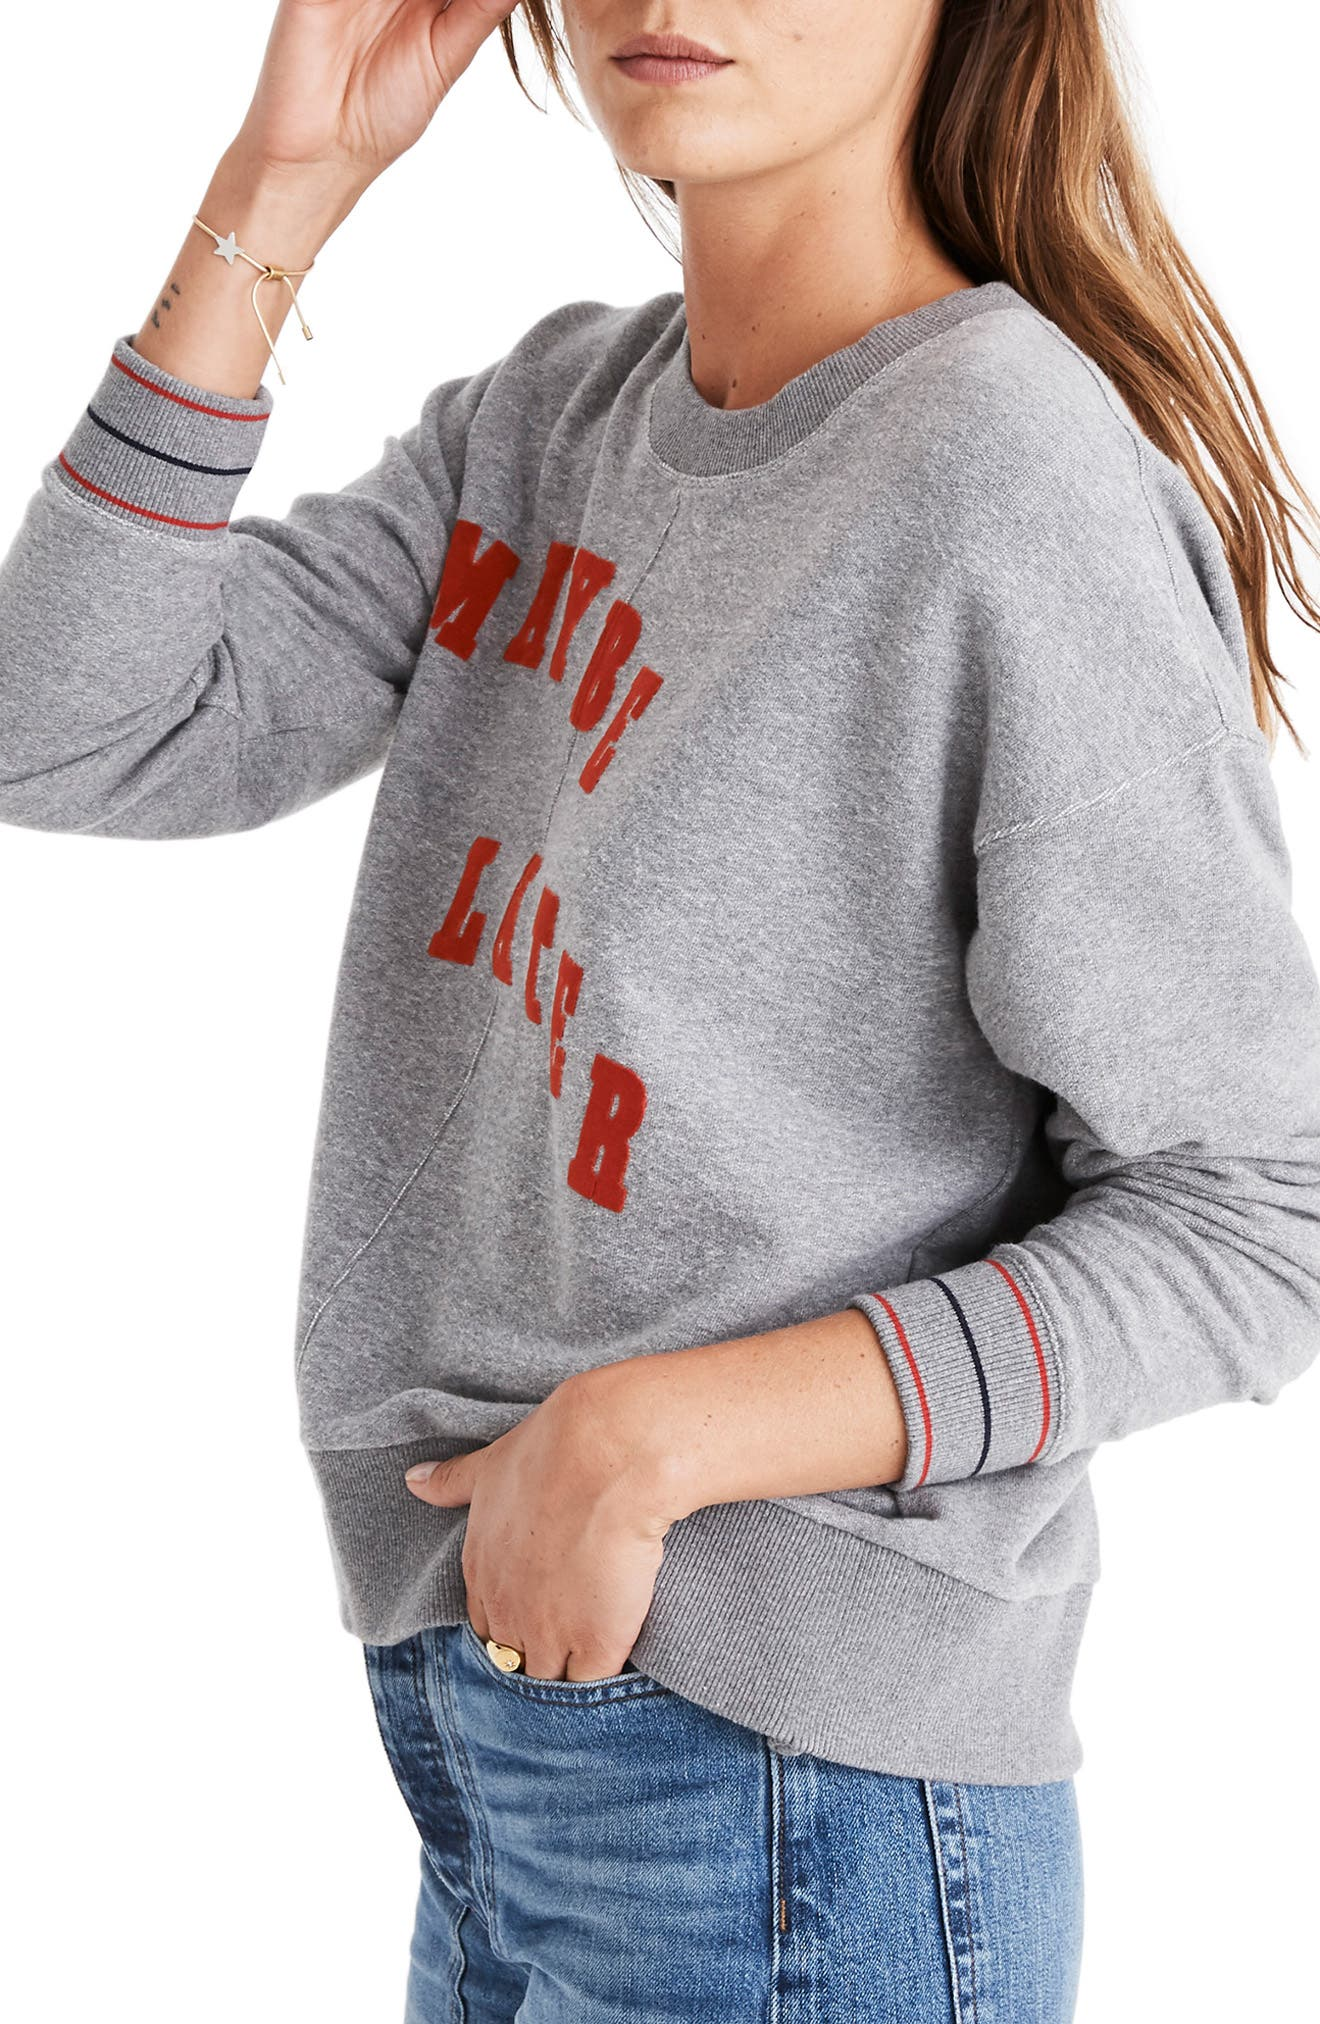 Maybe Later Mainstay Sweatshirt,                             Alternate thumbnail 3, color,                             020